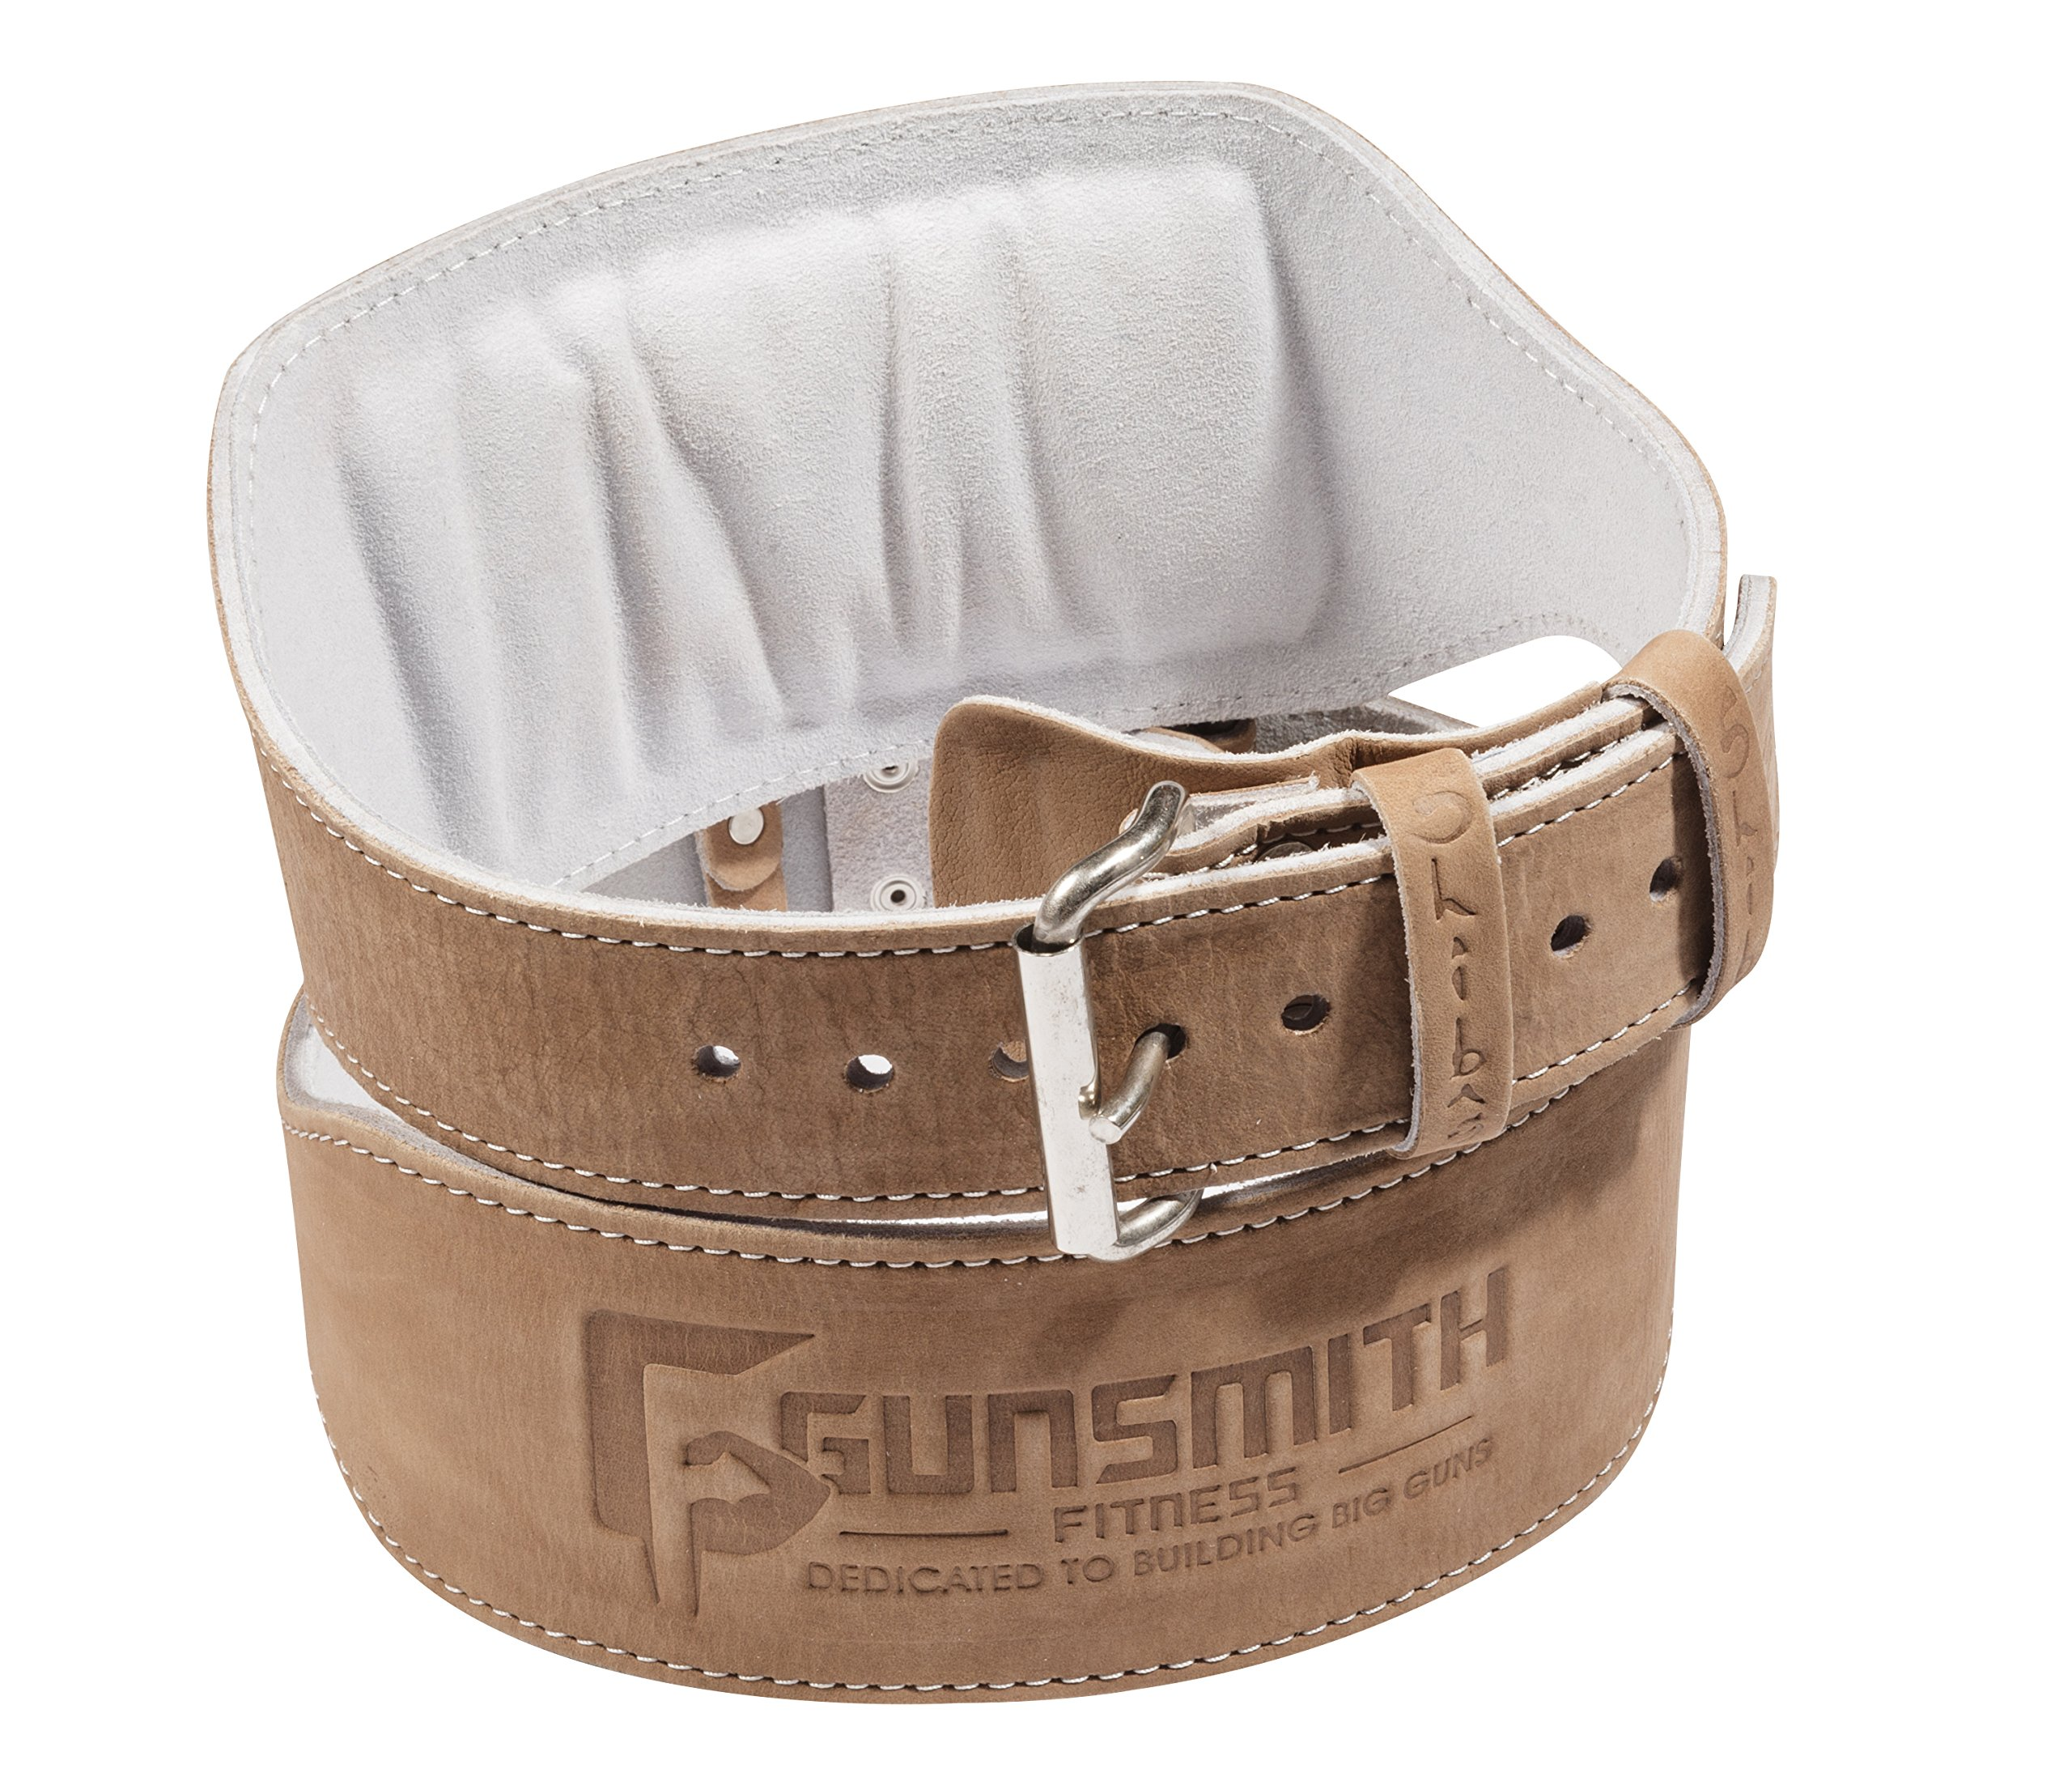 Gunsmith Fitness Premium 100% Real Genuine Leather Individually Handmade, Advanced Weight Lifting, Powerlifting & Bodybuilding (4-Inch Width, Large (Fits 33-37 inches))